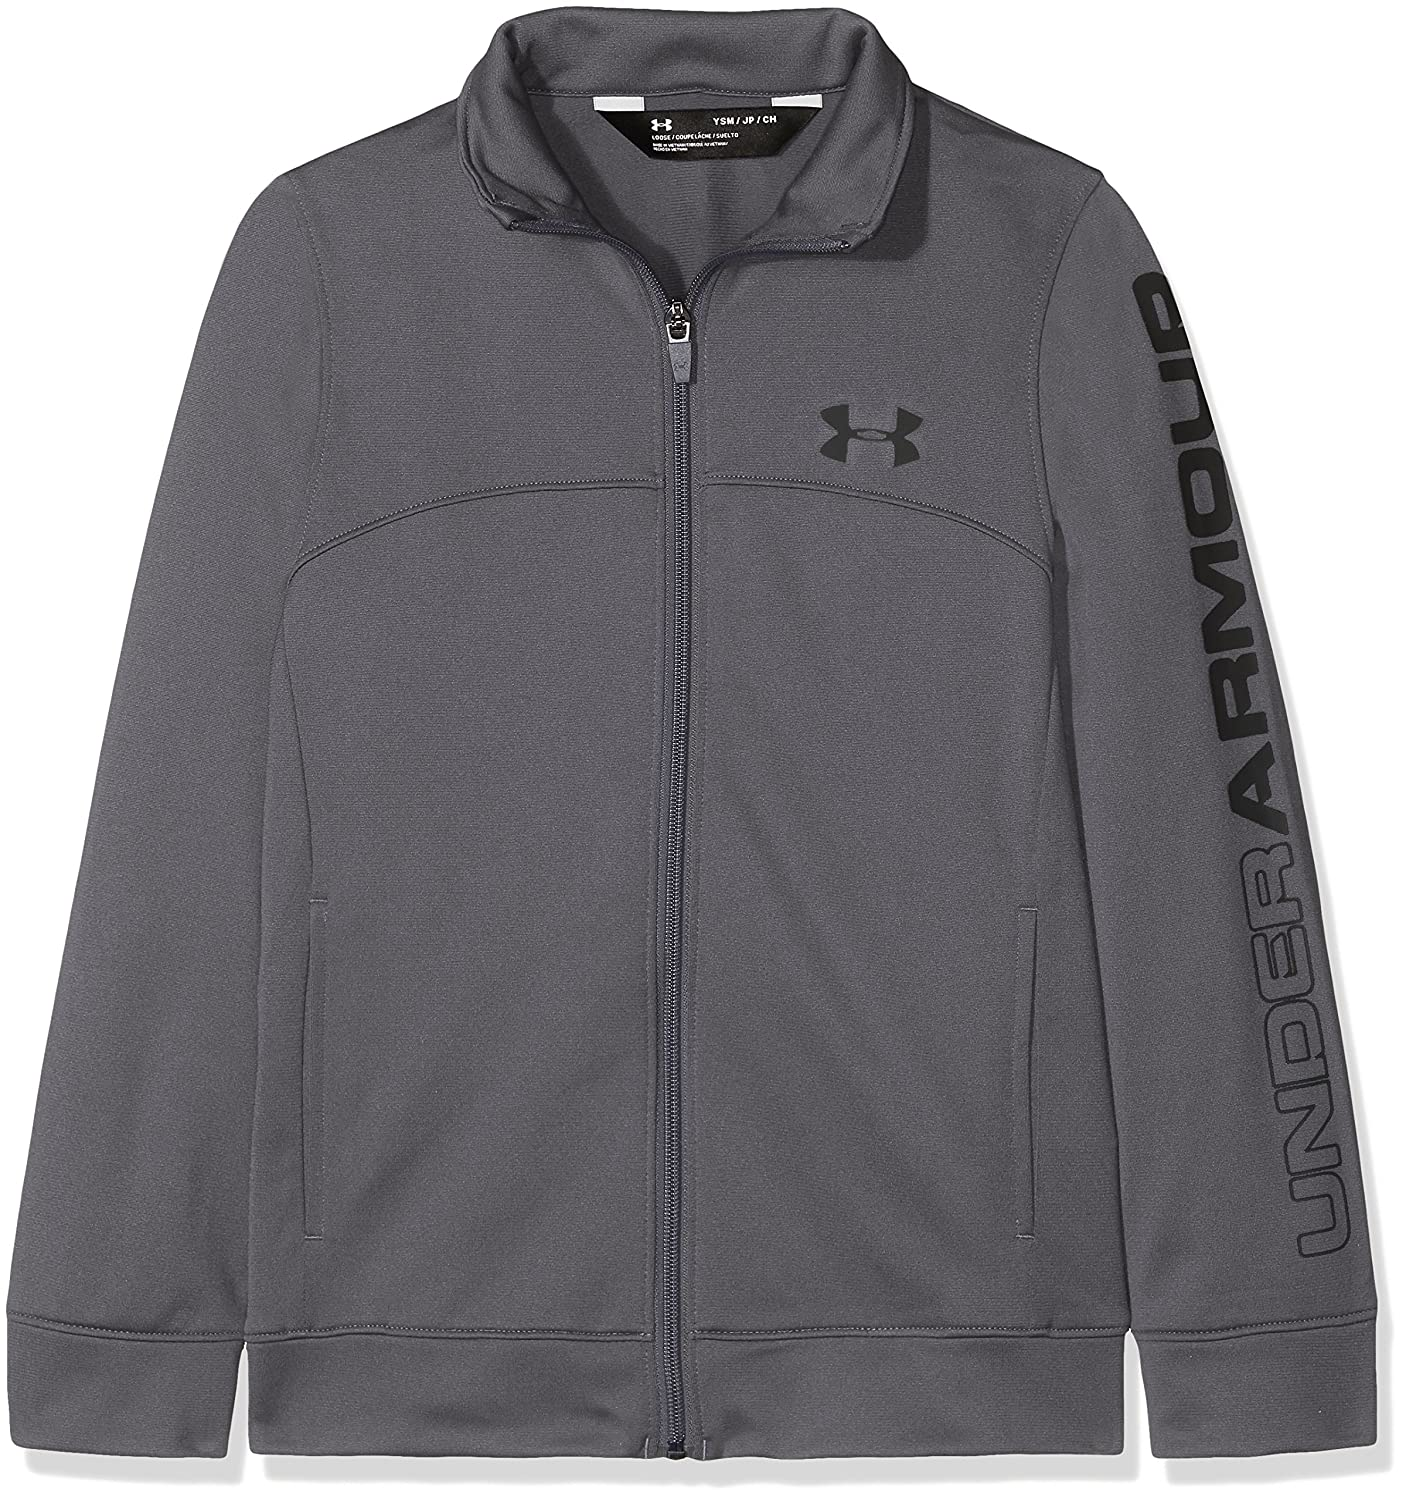 Under Armour Pennant Warm-Up Jacket Boy's Warm-up Top 1281069